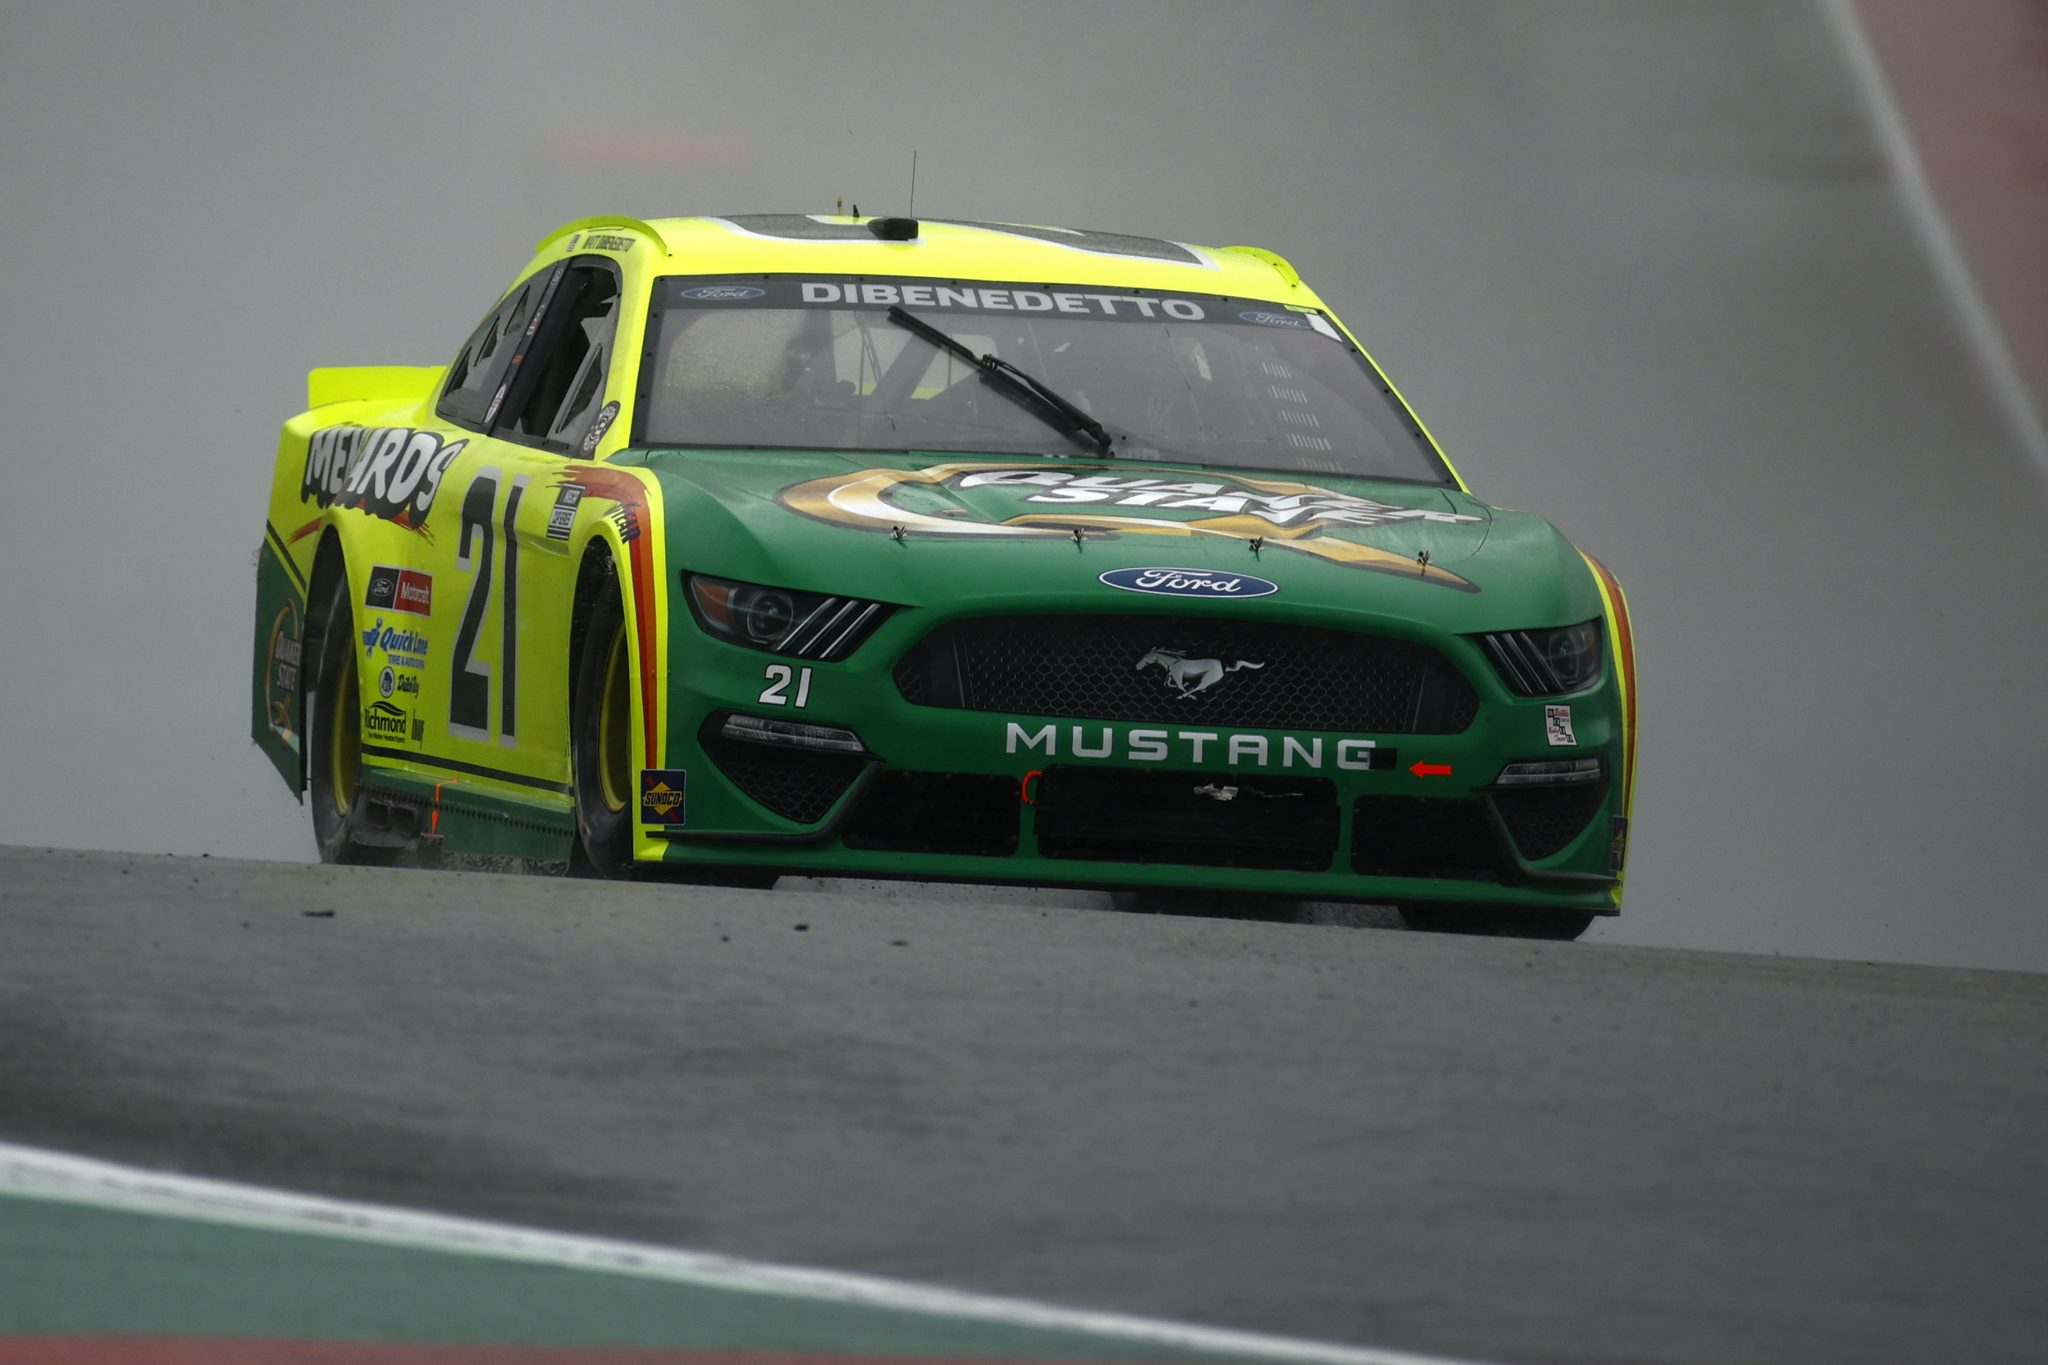 AUSTIN, TEXAS - MAY 23: Matt DiBenedetto, driver of the #21 Menards/Quaker State Ford, drives during the NASCAR Cup Series EchoPark Texas Grand Prix at Circuit of The Americas on May 23, 2021 in Austin, Texas. (Photo by Jared C. Tilton/Getty Images)   Getty Images